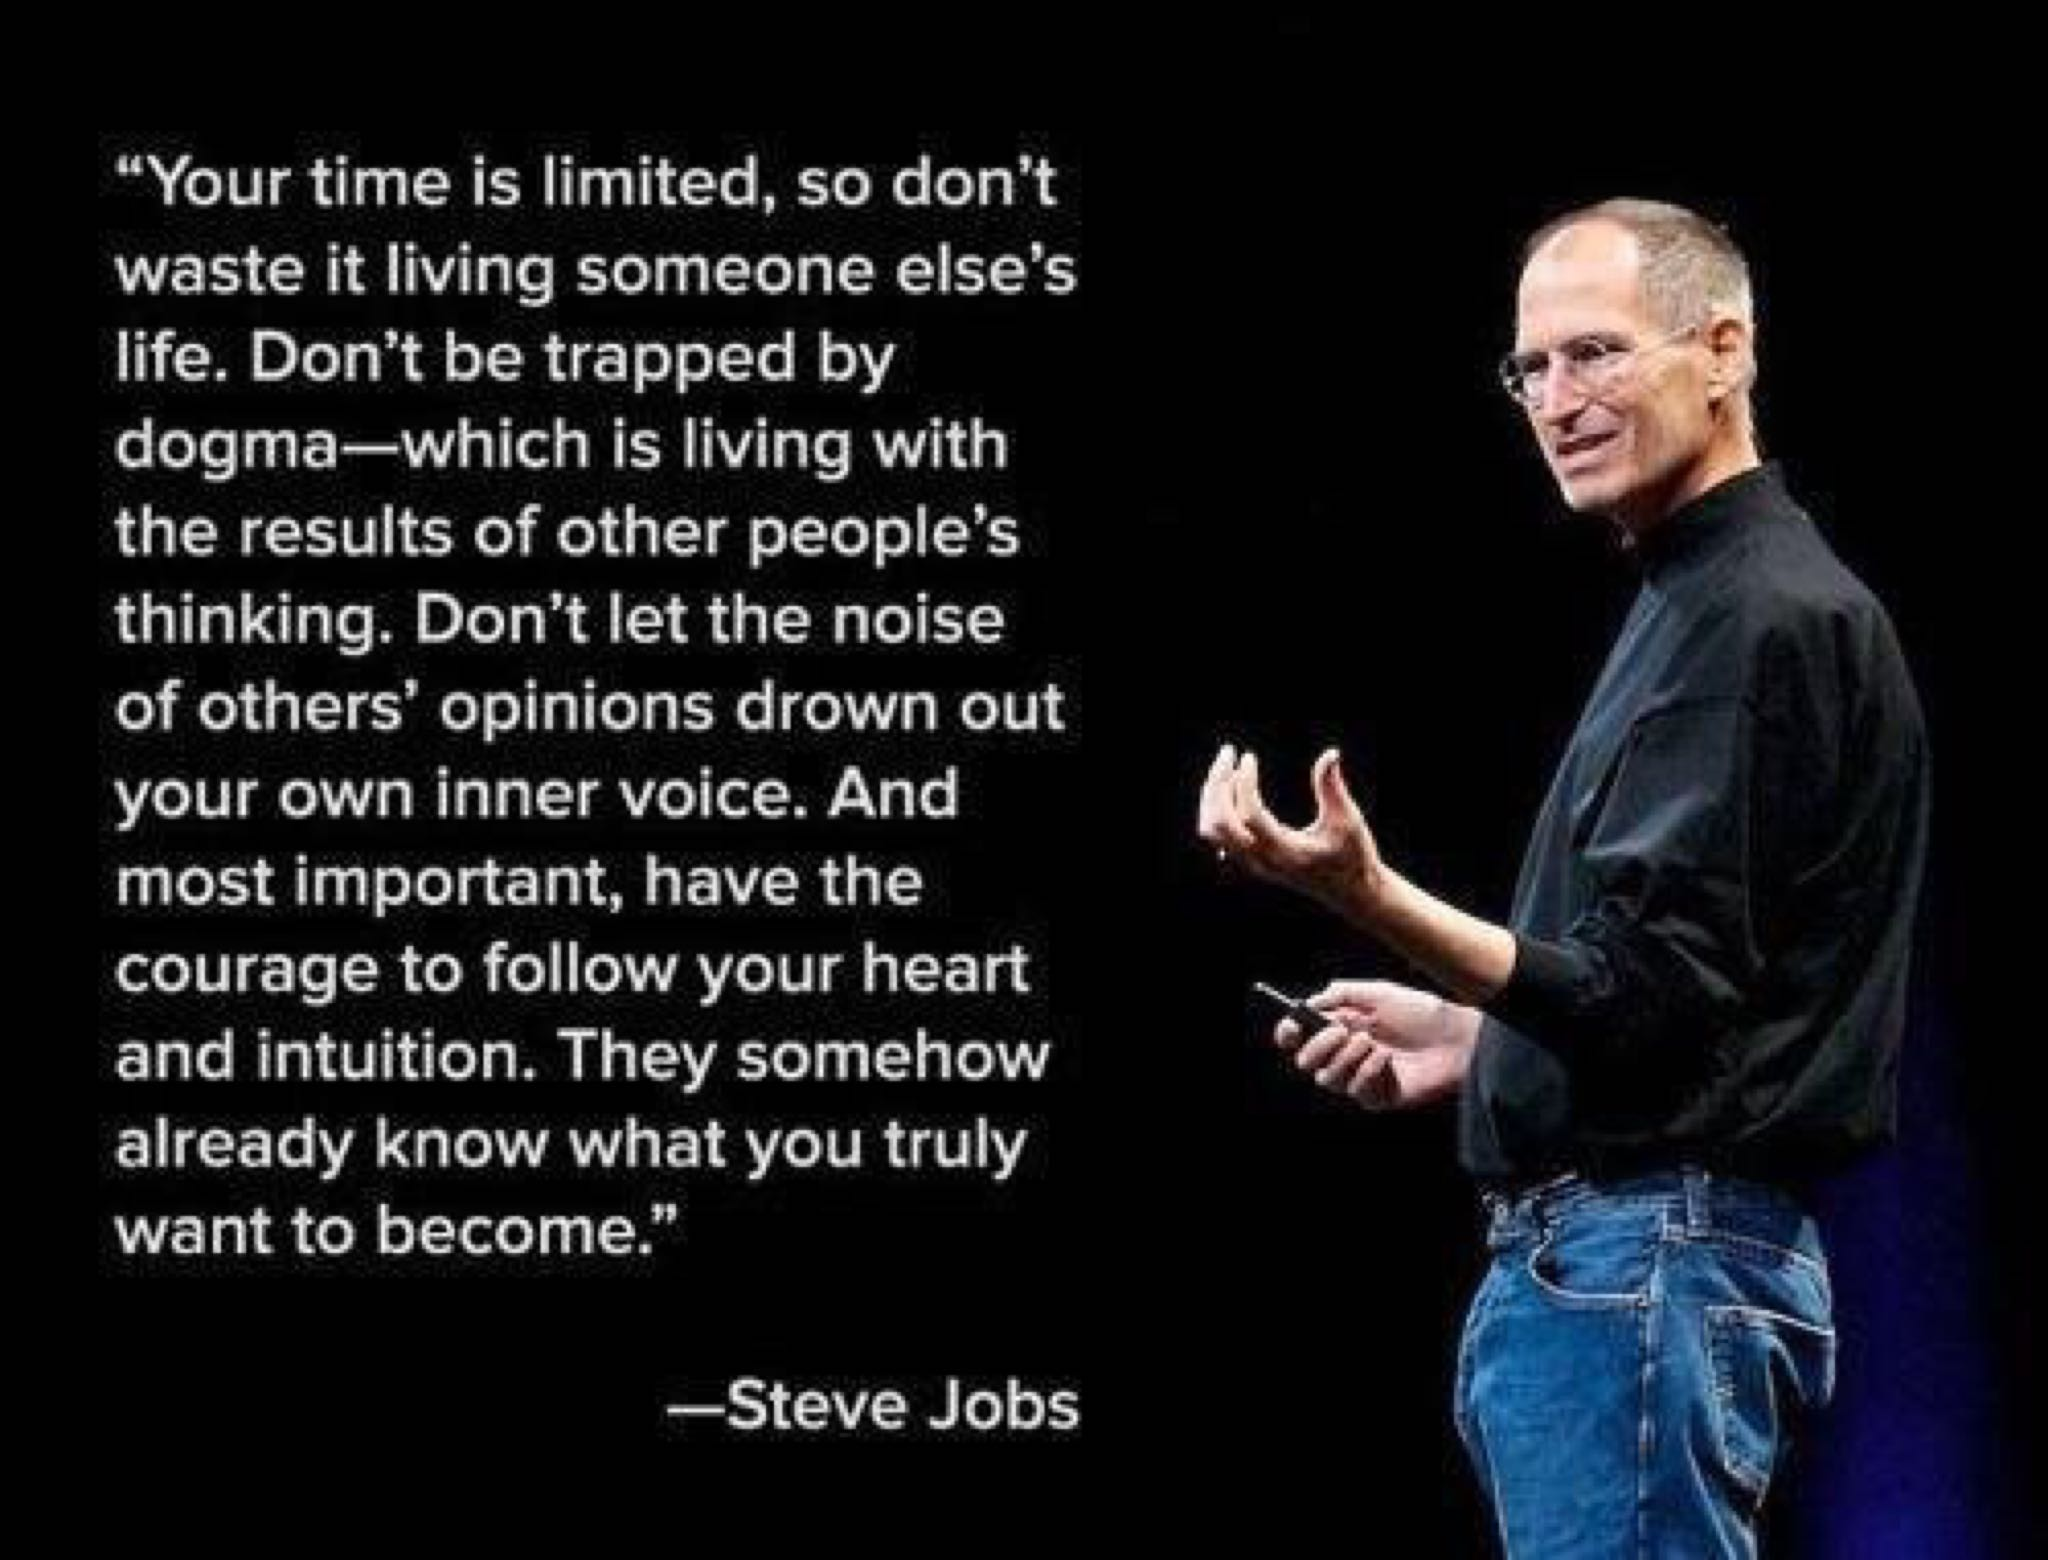 [image] Your time is limited, so don't waste it living someone else's life